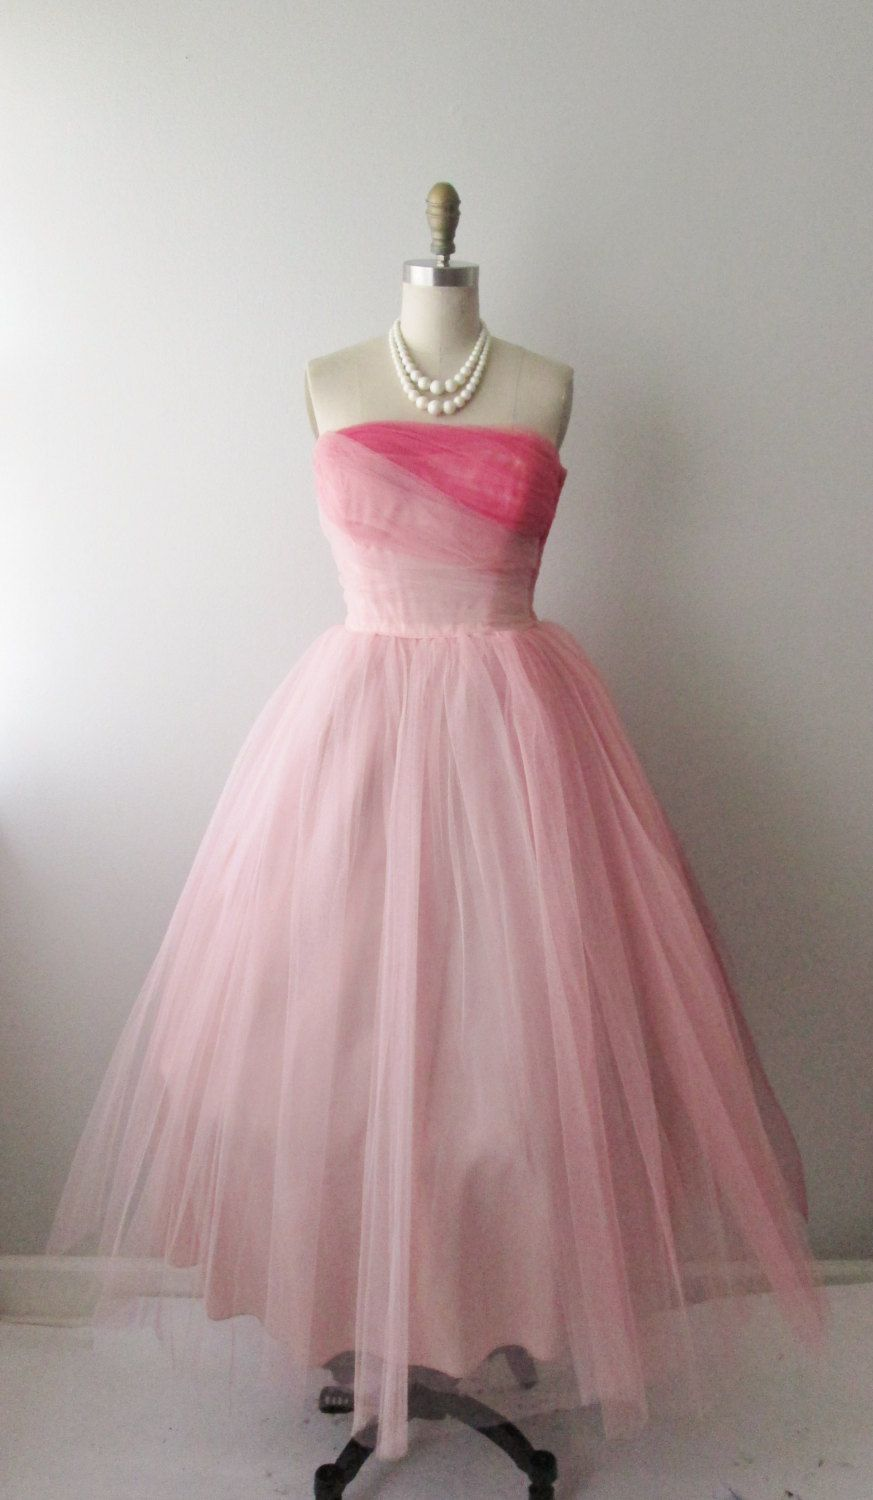 50s Prom Dress Vintage 1950s Strapless Pink Tulle Wedding Party Prom Dress S Prom Party Dresses 50s Prom Dresses Prom Dresses Vintage 1950s [ 1500 x 873 Pixel ]